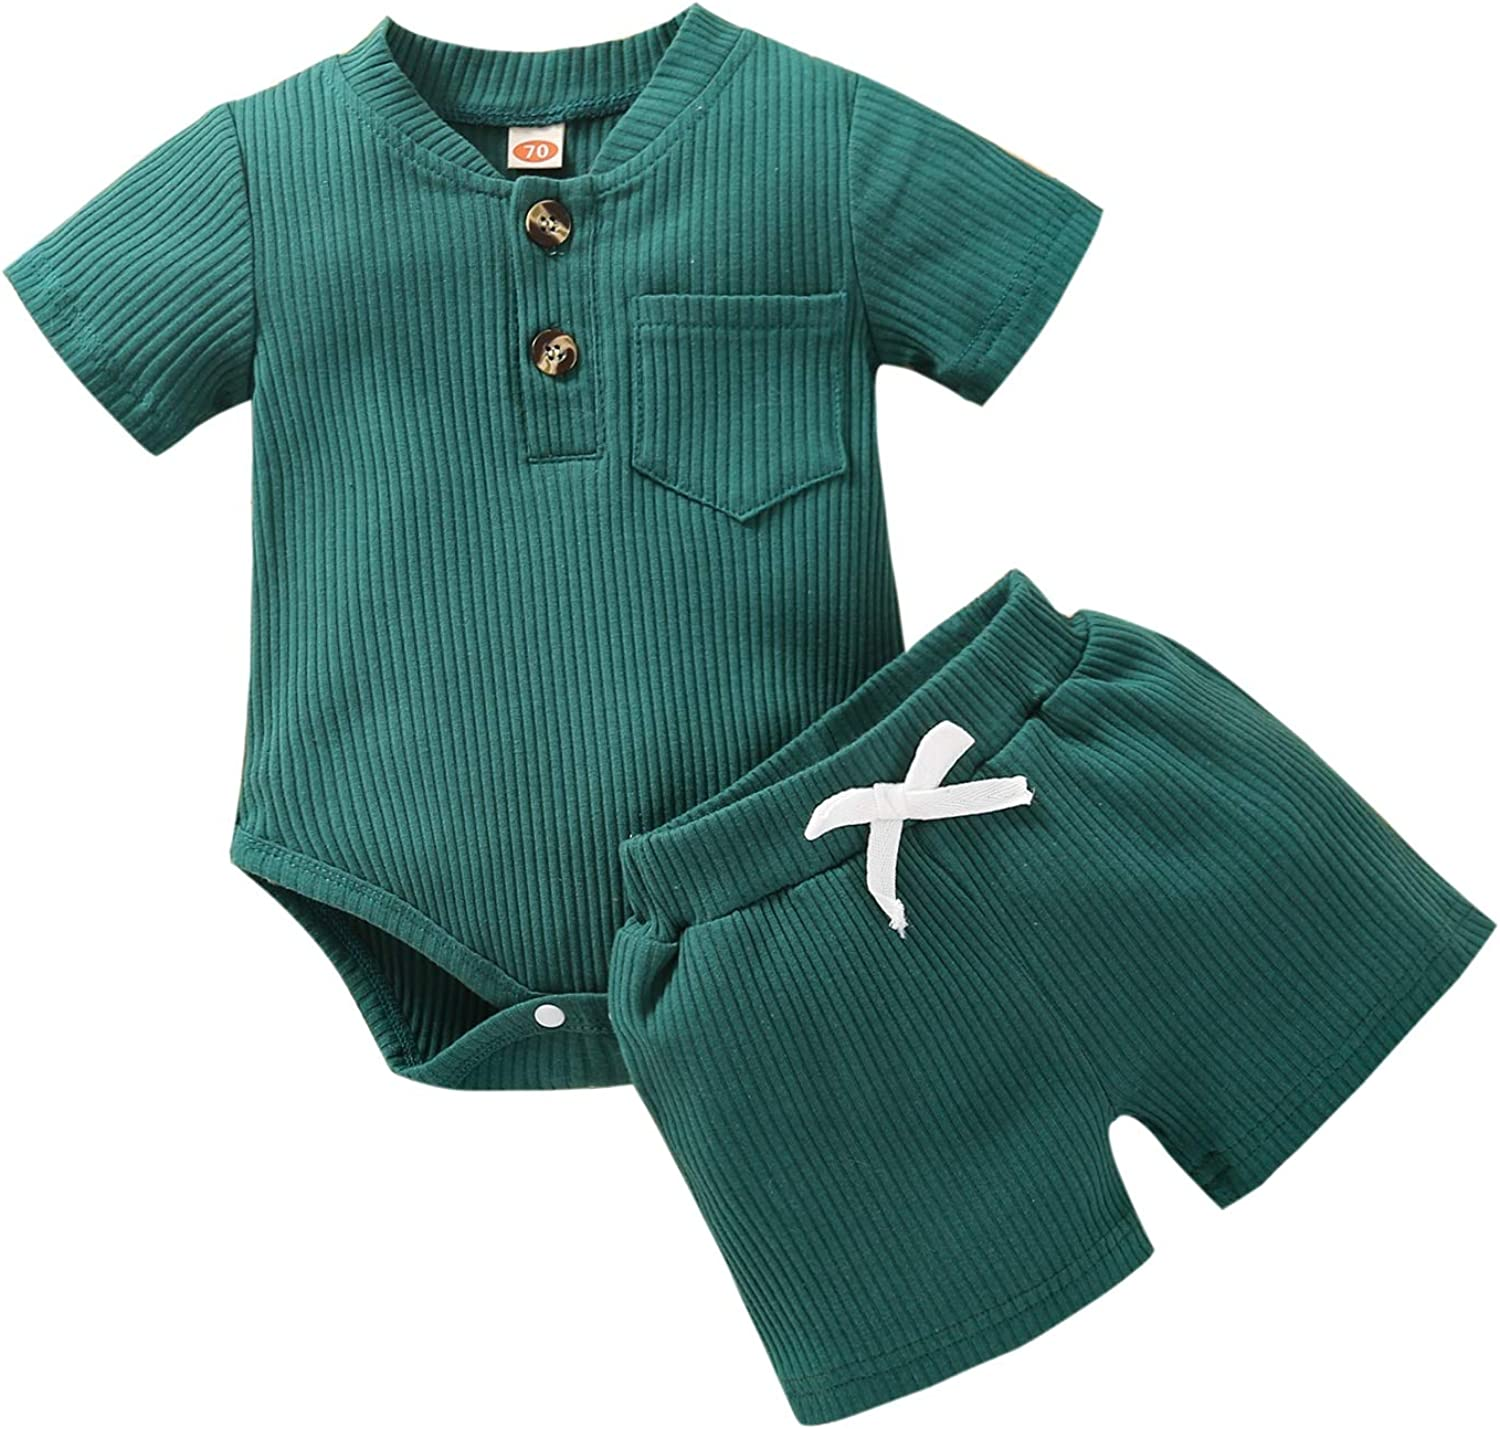 Newborn Baby Boys Girls Outfits Infant Ribbed Knitted Cotton Short Sleeve Tops 2 Piece Shorts Set Summer